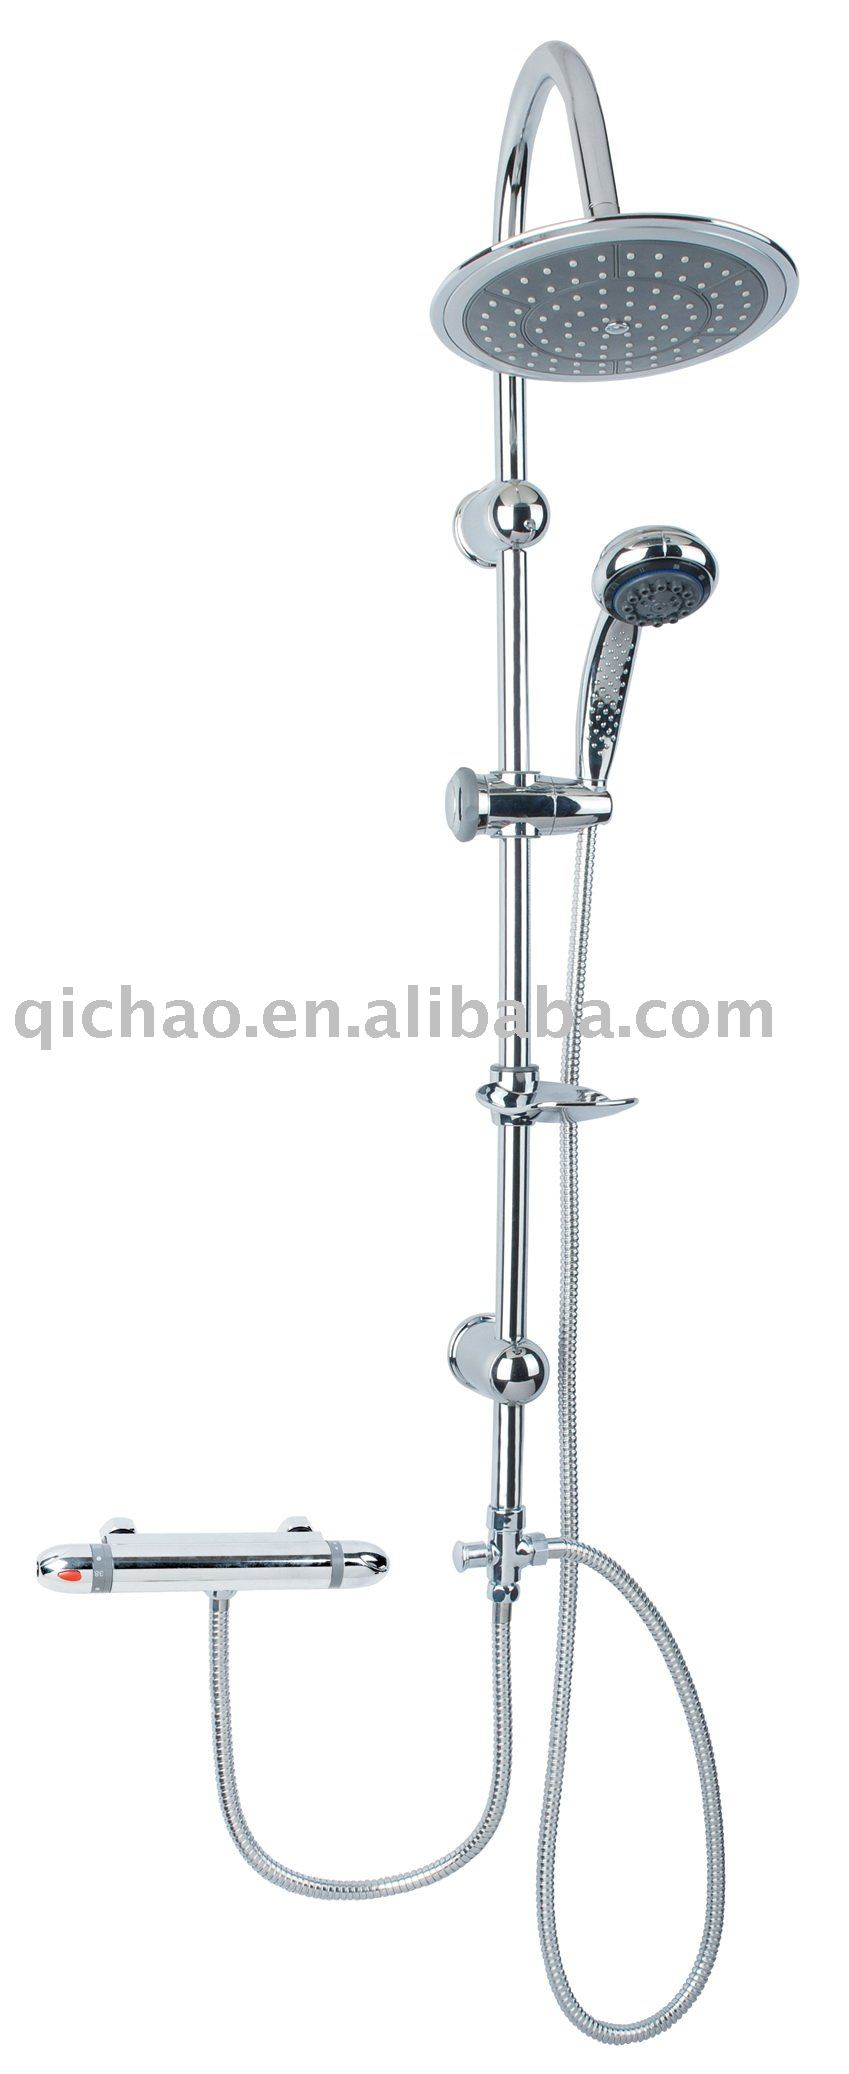 Shower Head Extension   Buy Shower Head Extension,Shower Set,Head Shower  Rod Product On Alibaba.com